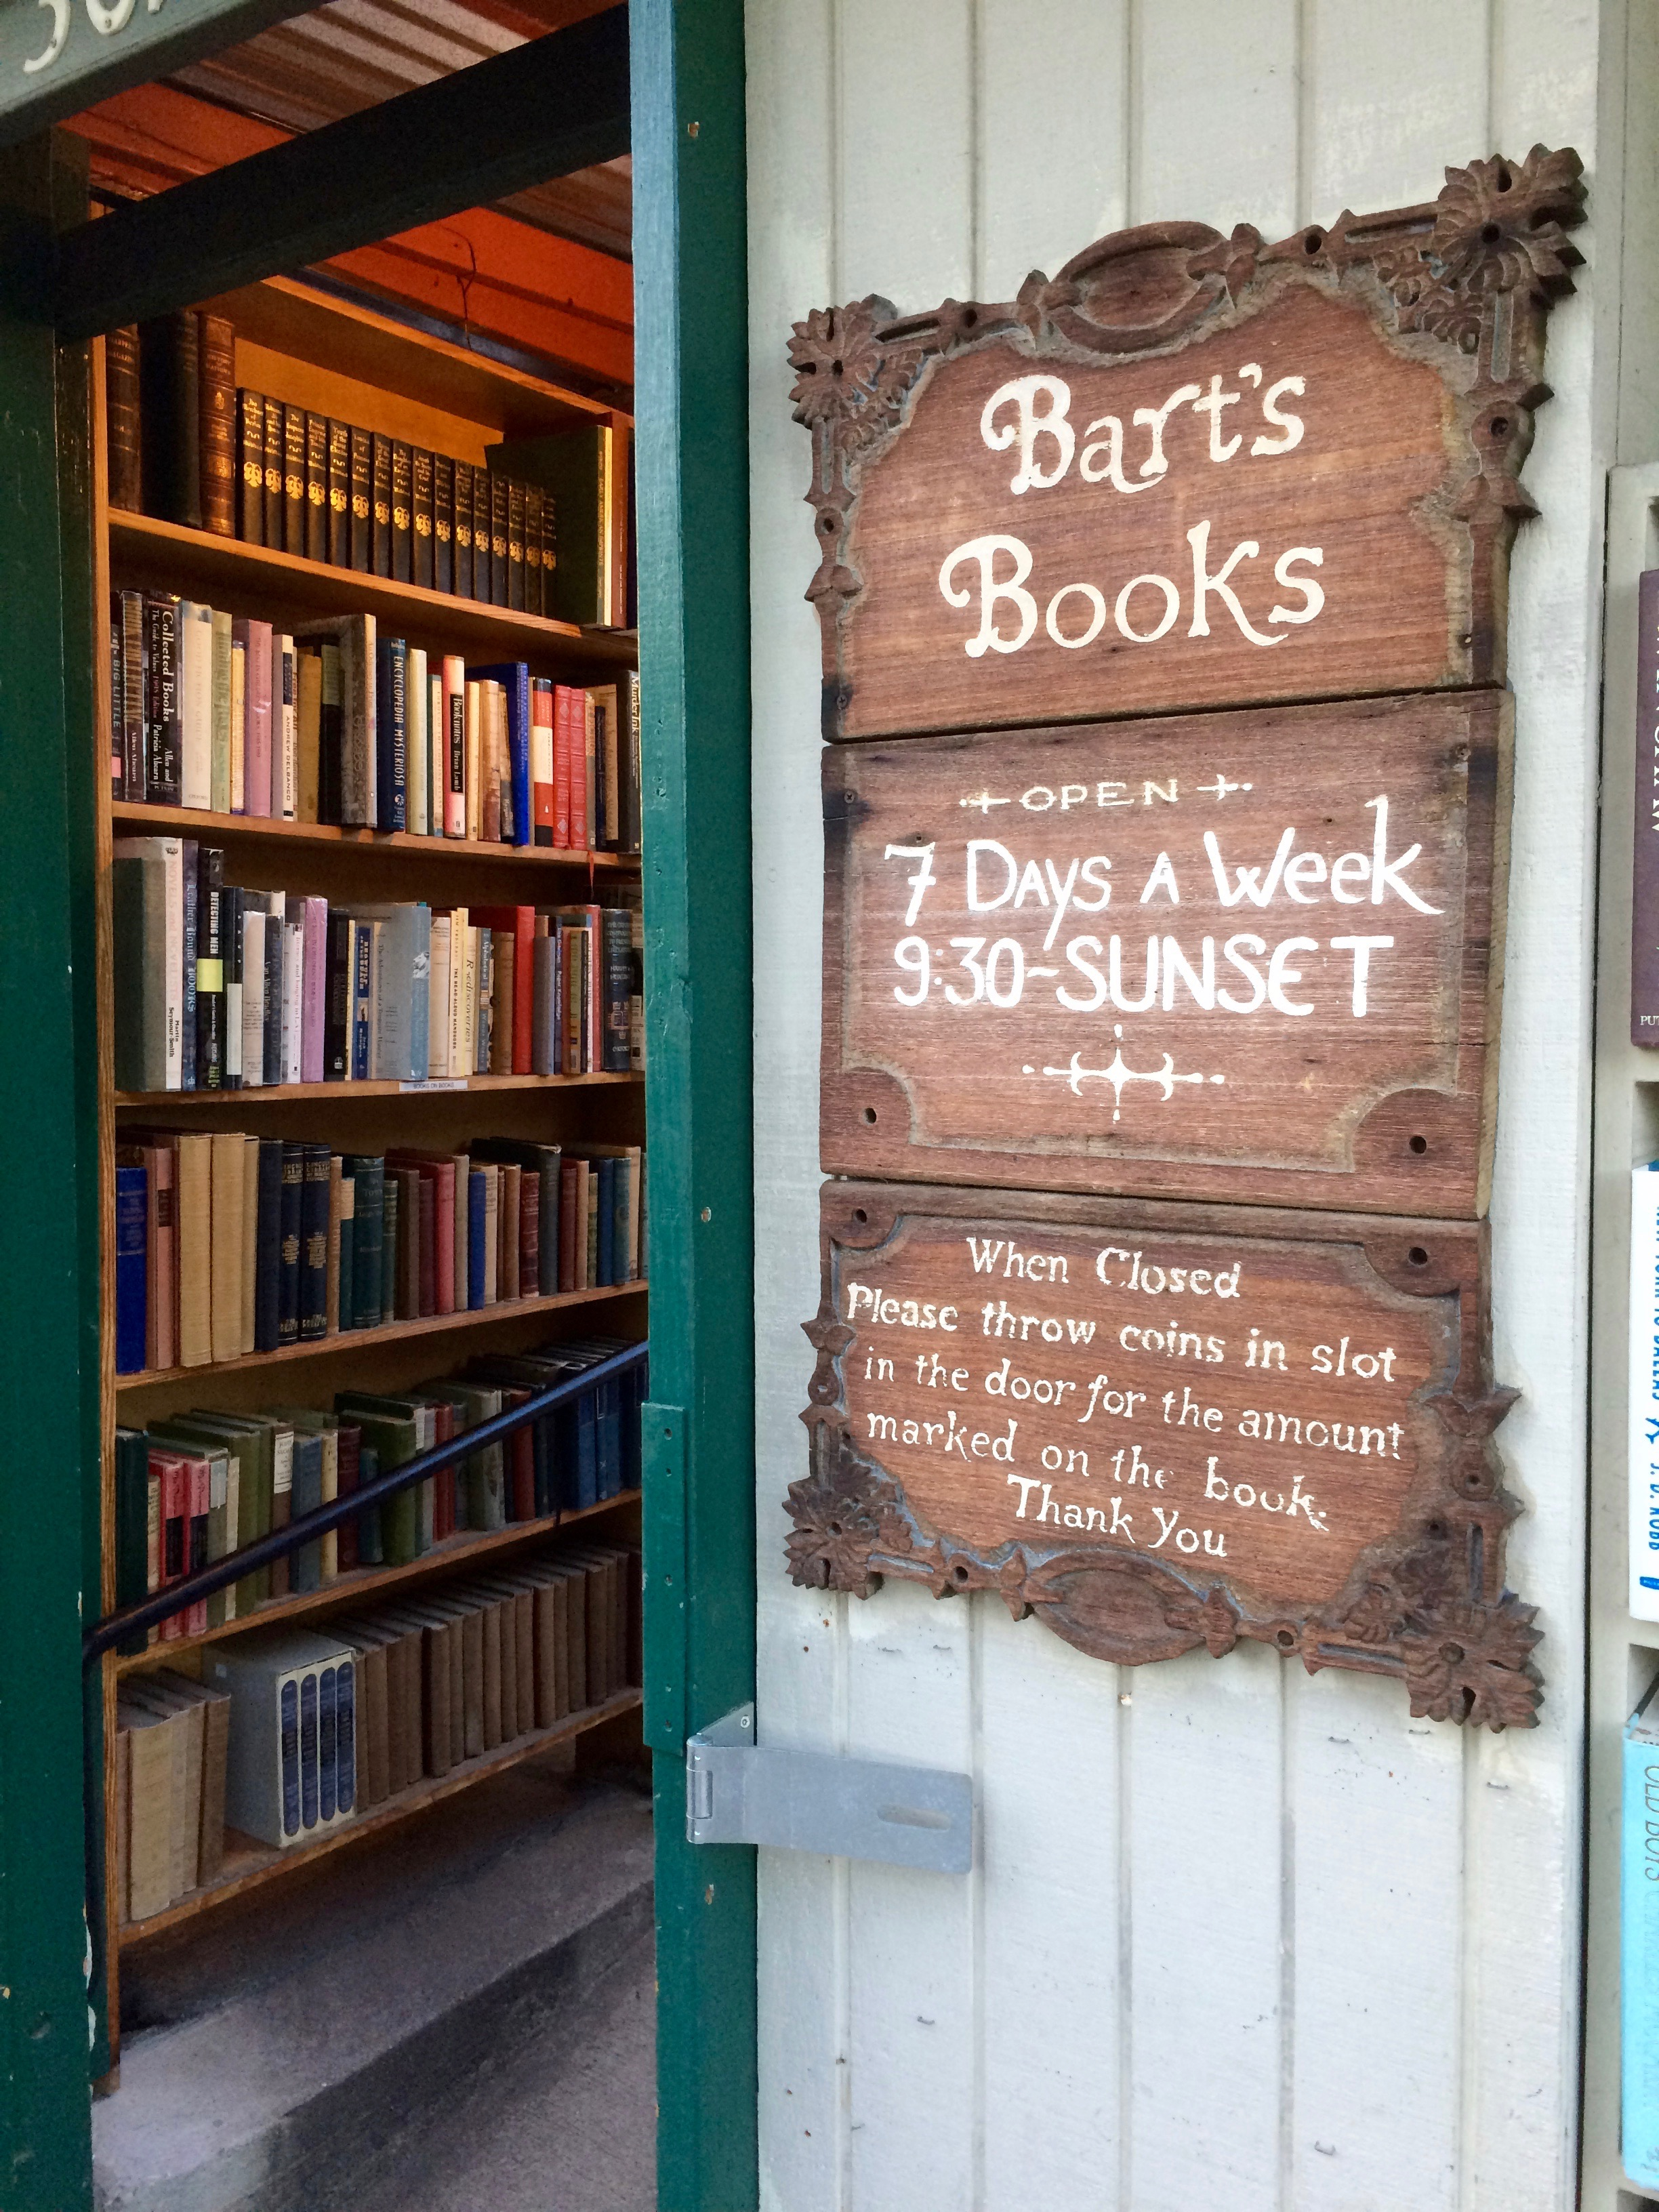 Bart's Book Store, Ojai California - 3 Days*